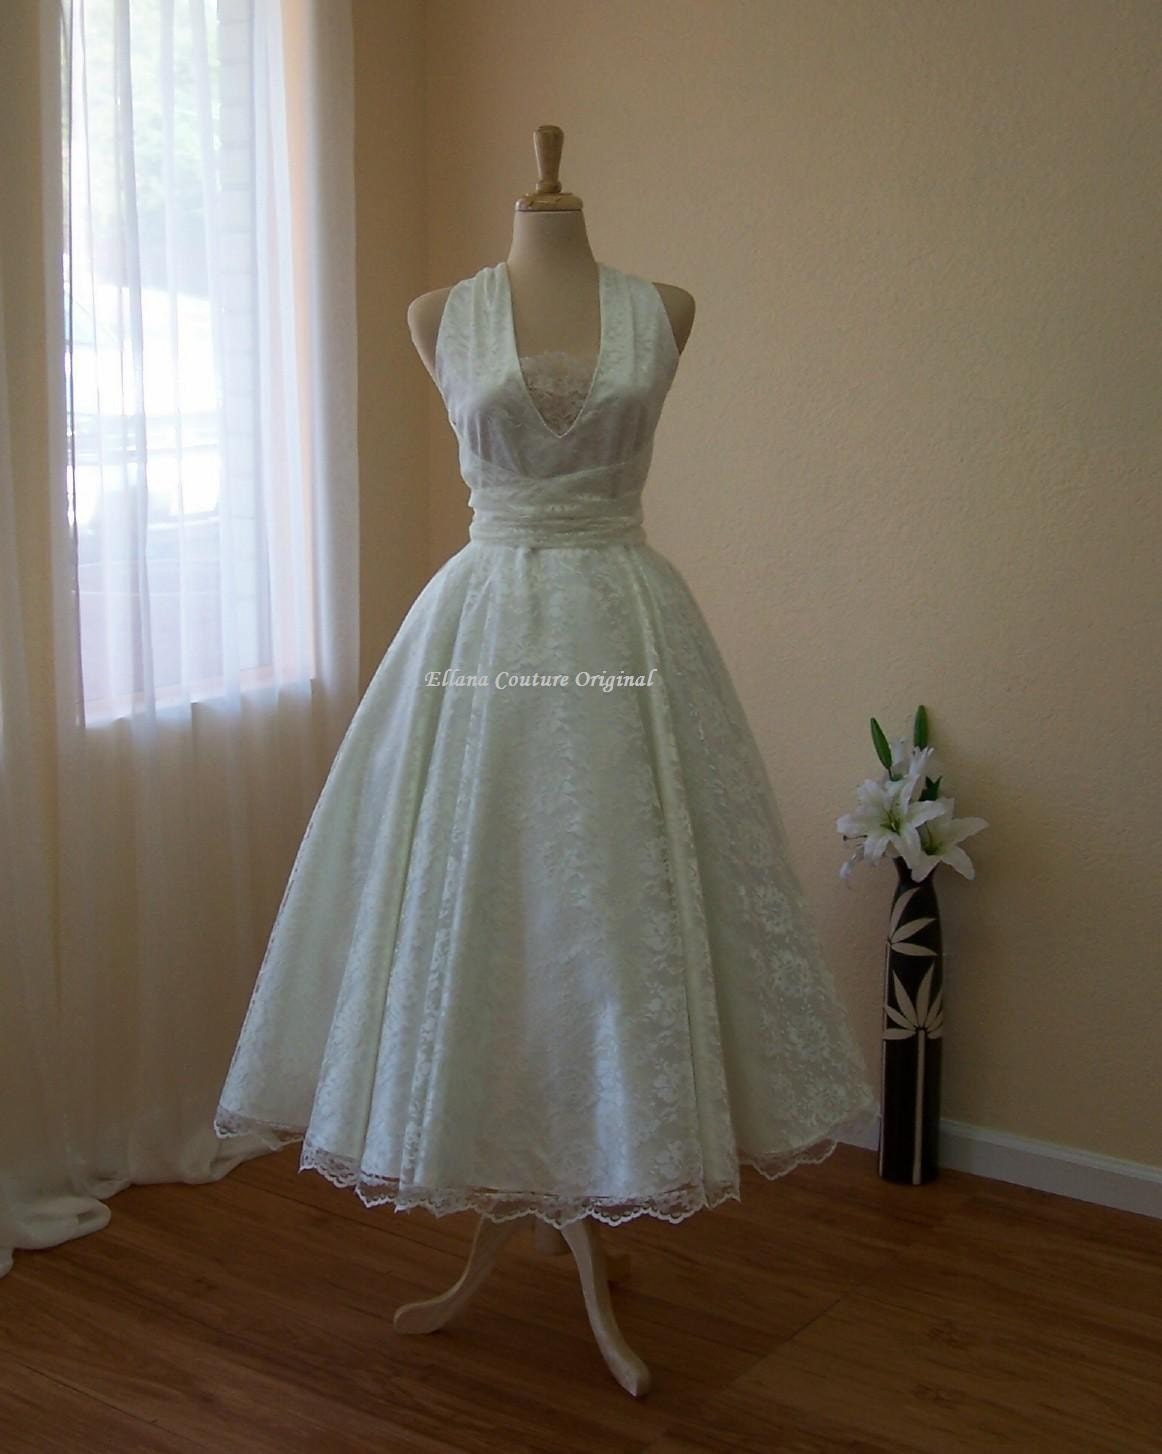 Retro Style Wedding Dress Wrap Around Tea Length Bridal Gown